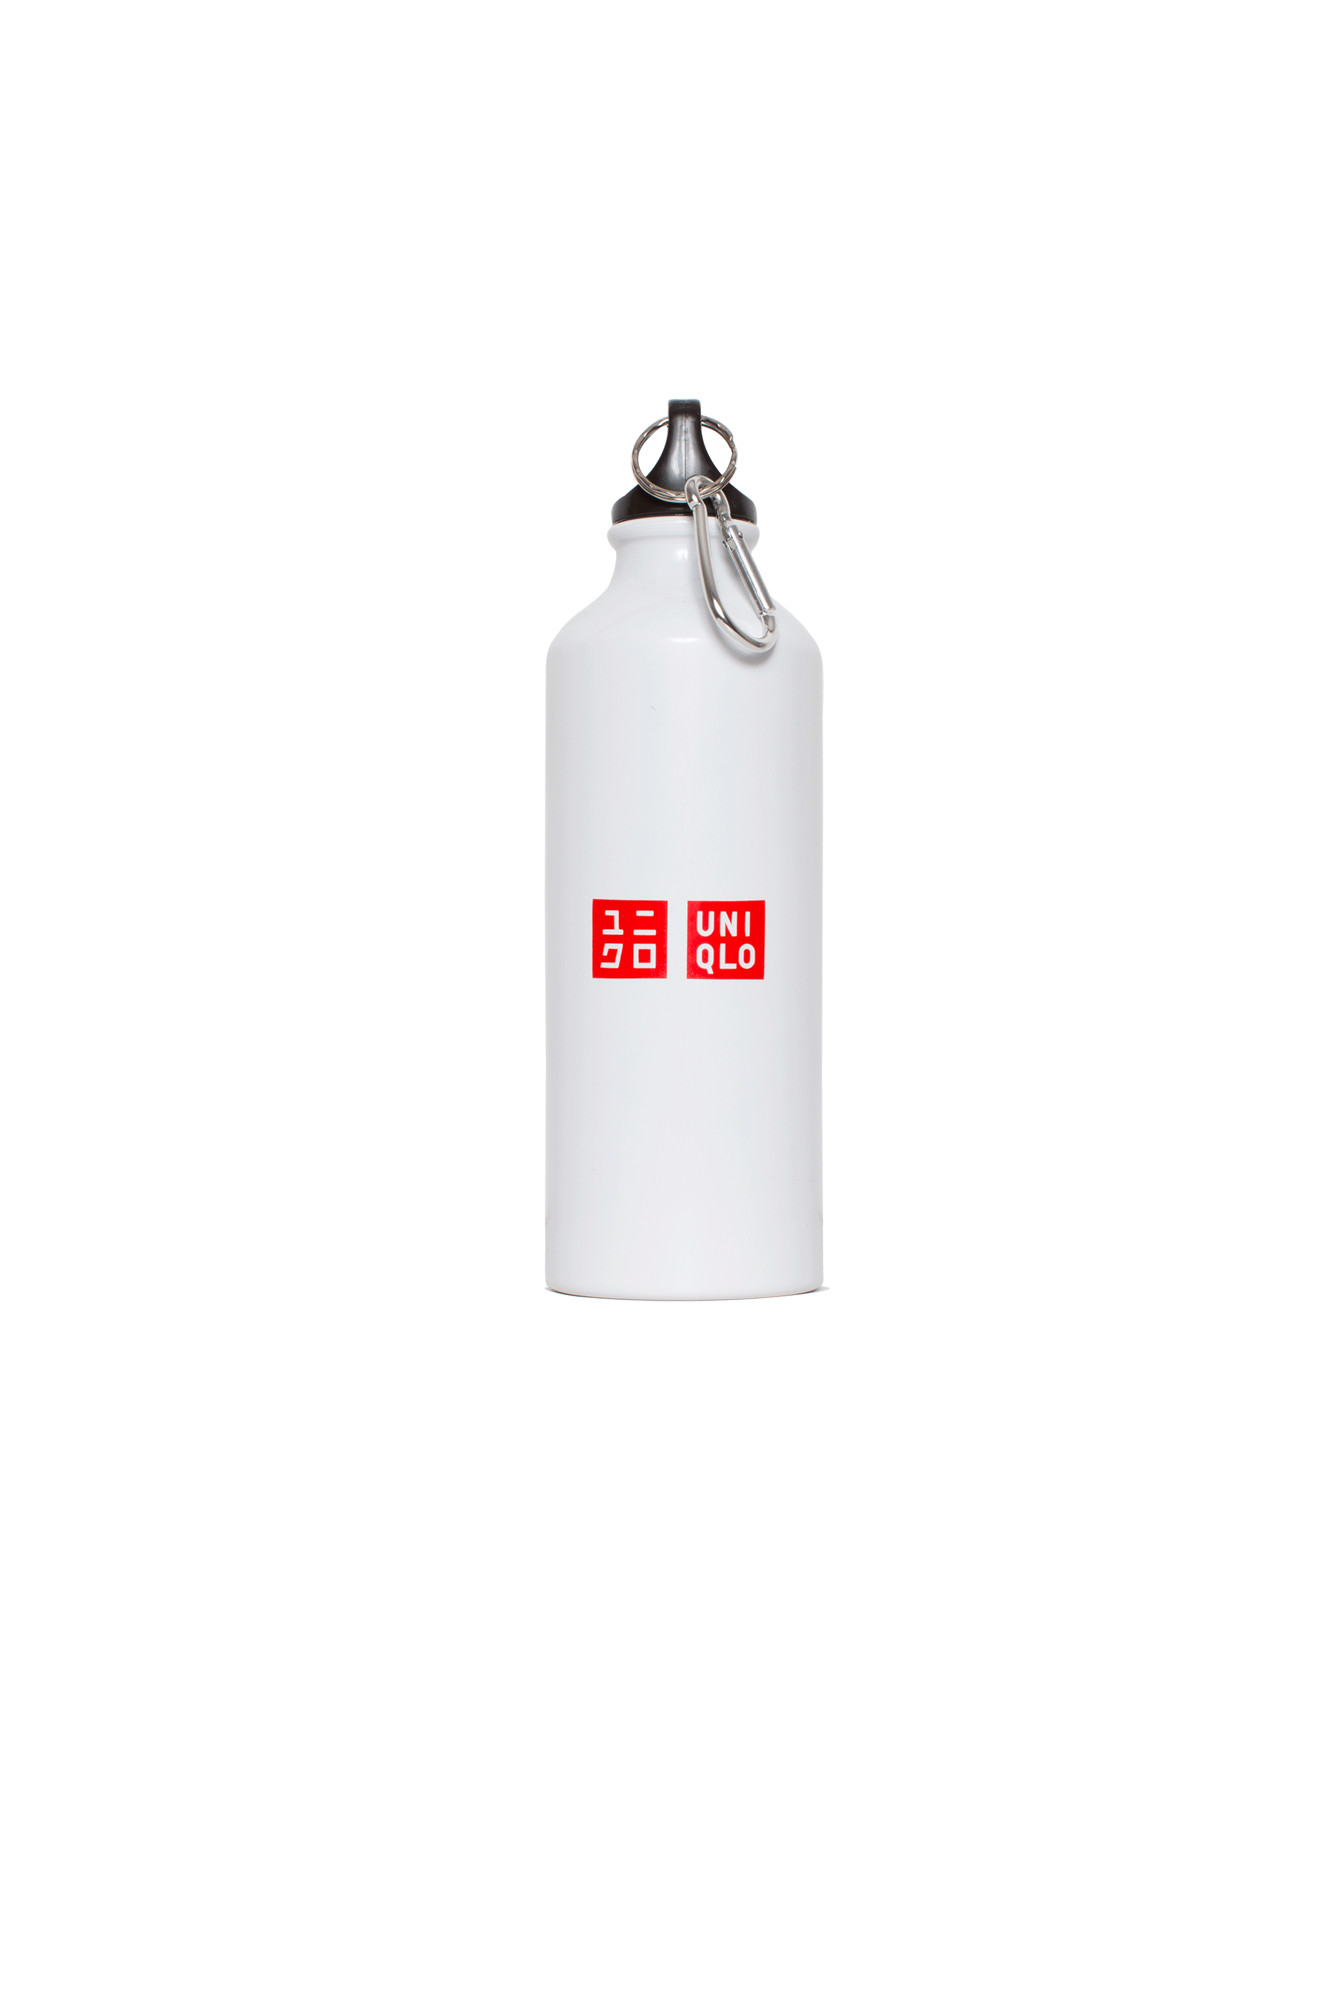 Uniqlo Miscellaneous Reusable Water Bottle White WATERGOLD#000#WHT#OS - One Block Down